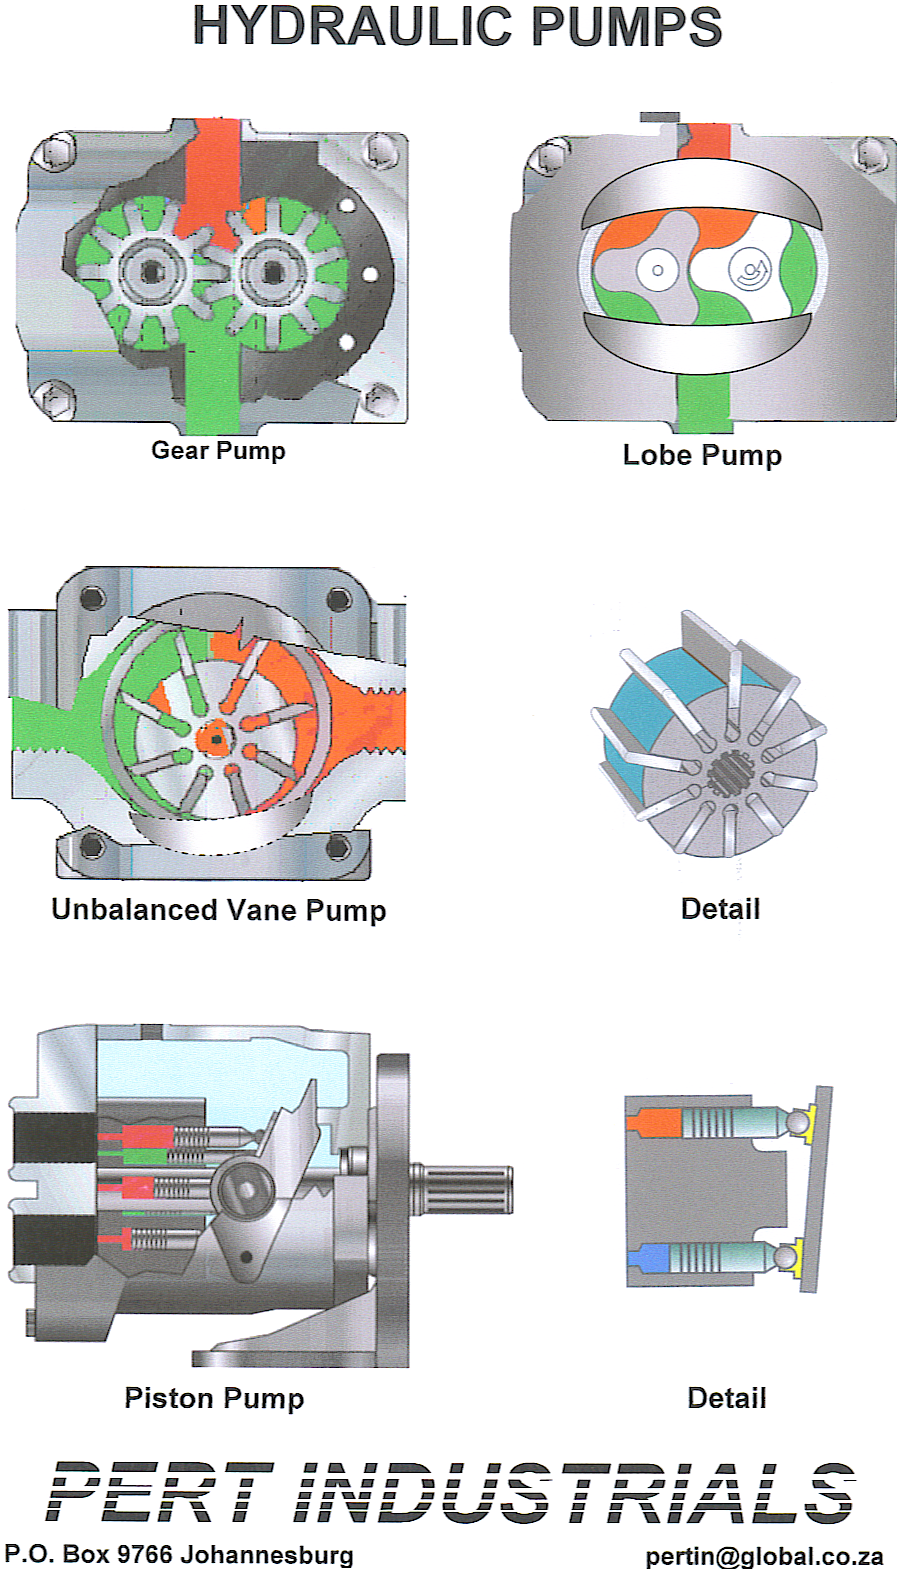 HP4-3 Hydraulic Pumps Poster.png